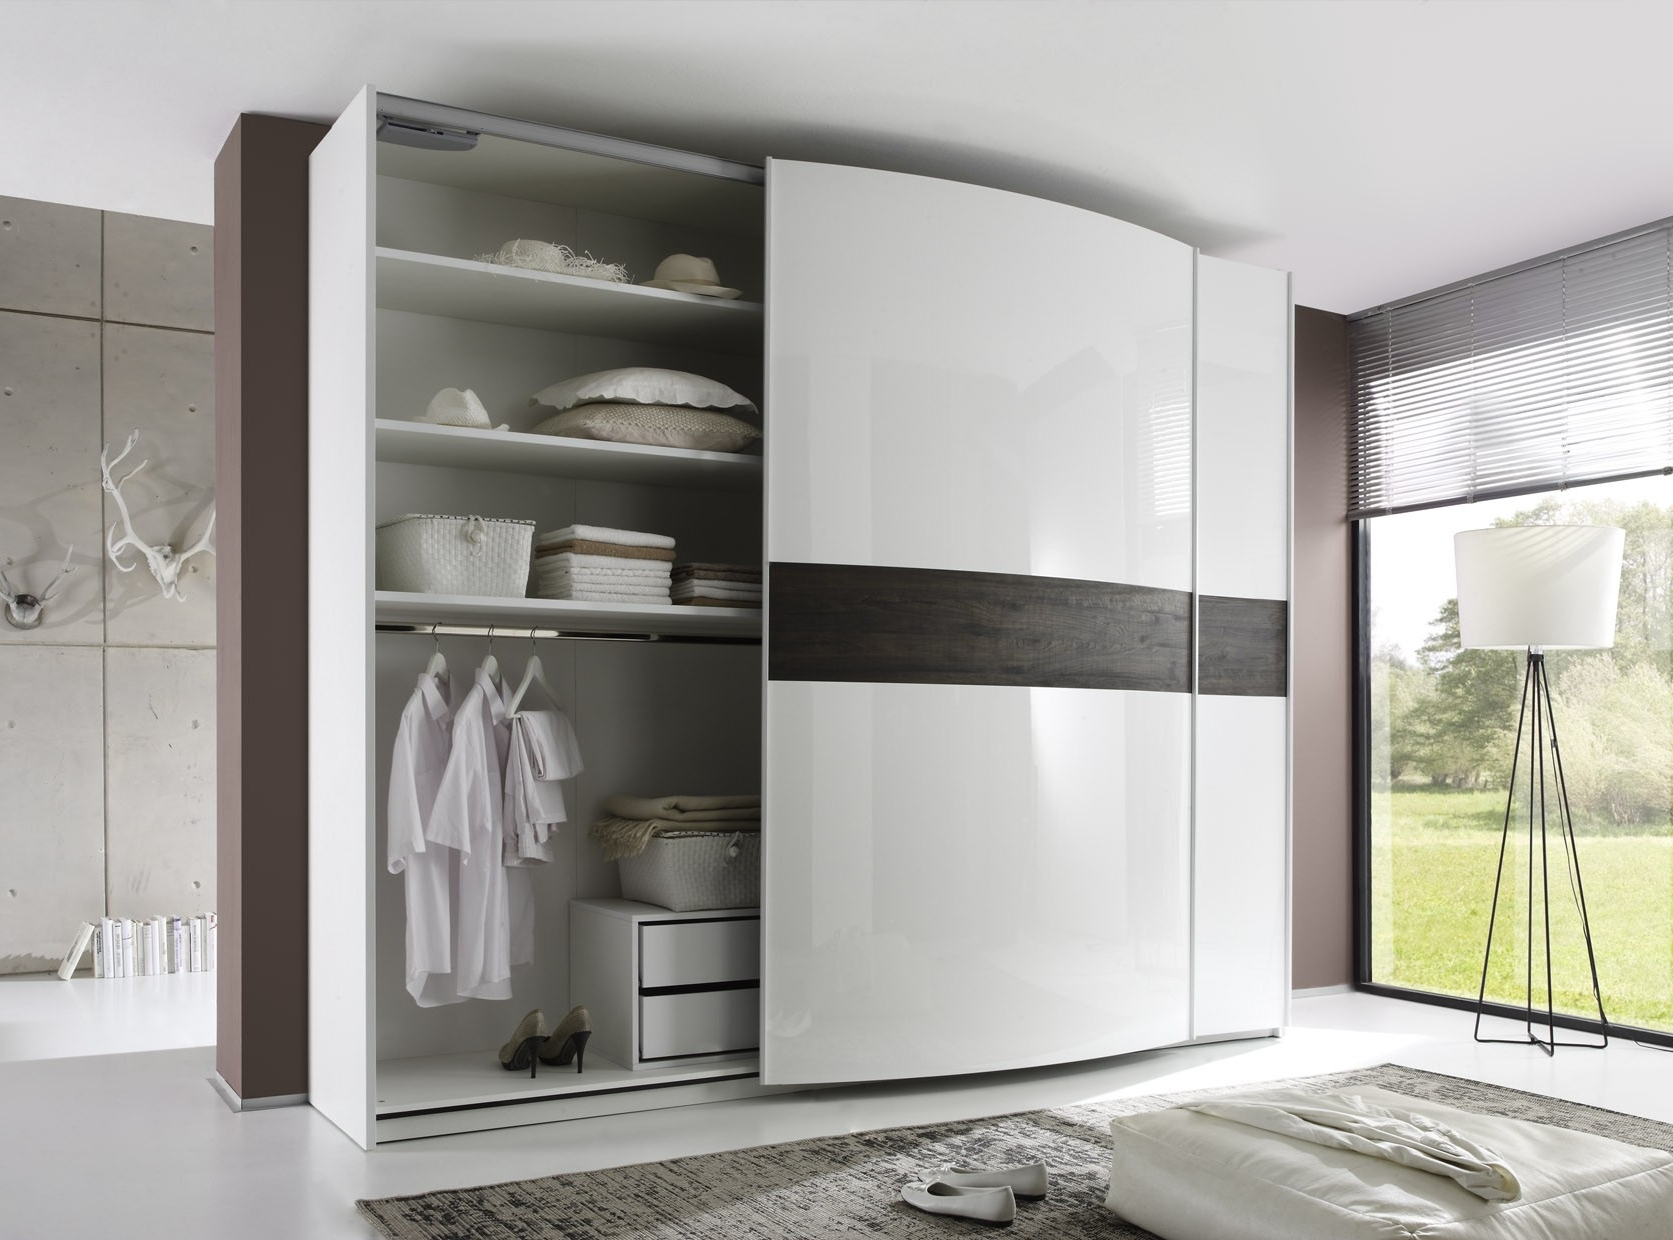 Wardrobes White Gloss For Popular Tambura Sliding Doors Wardrobe, White + Miele Buy Online At Best (View 15 of 15)